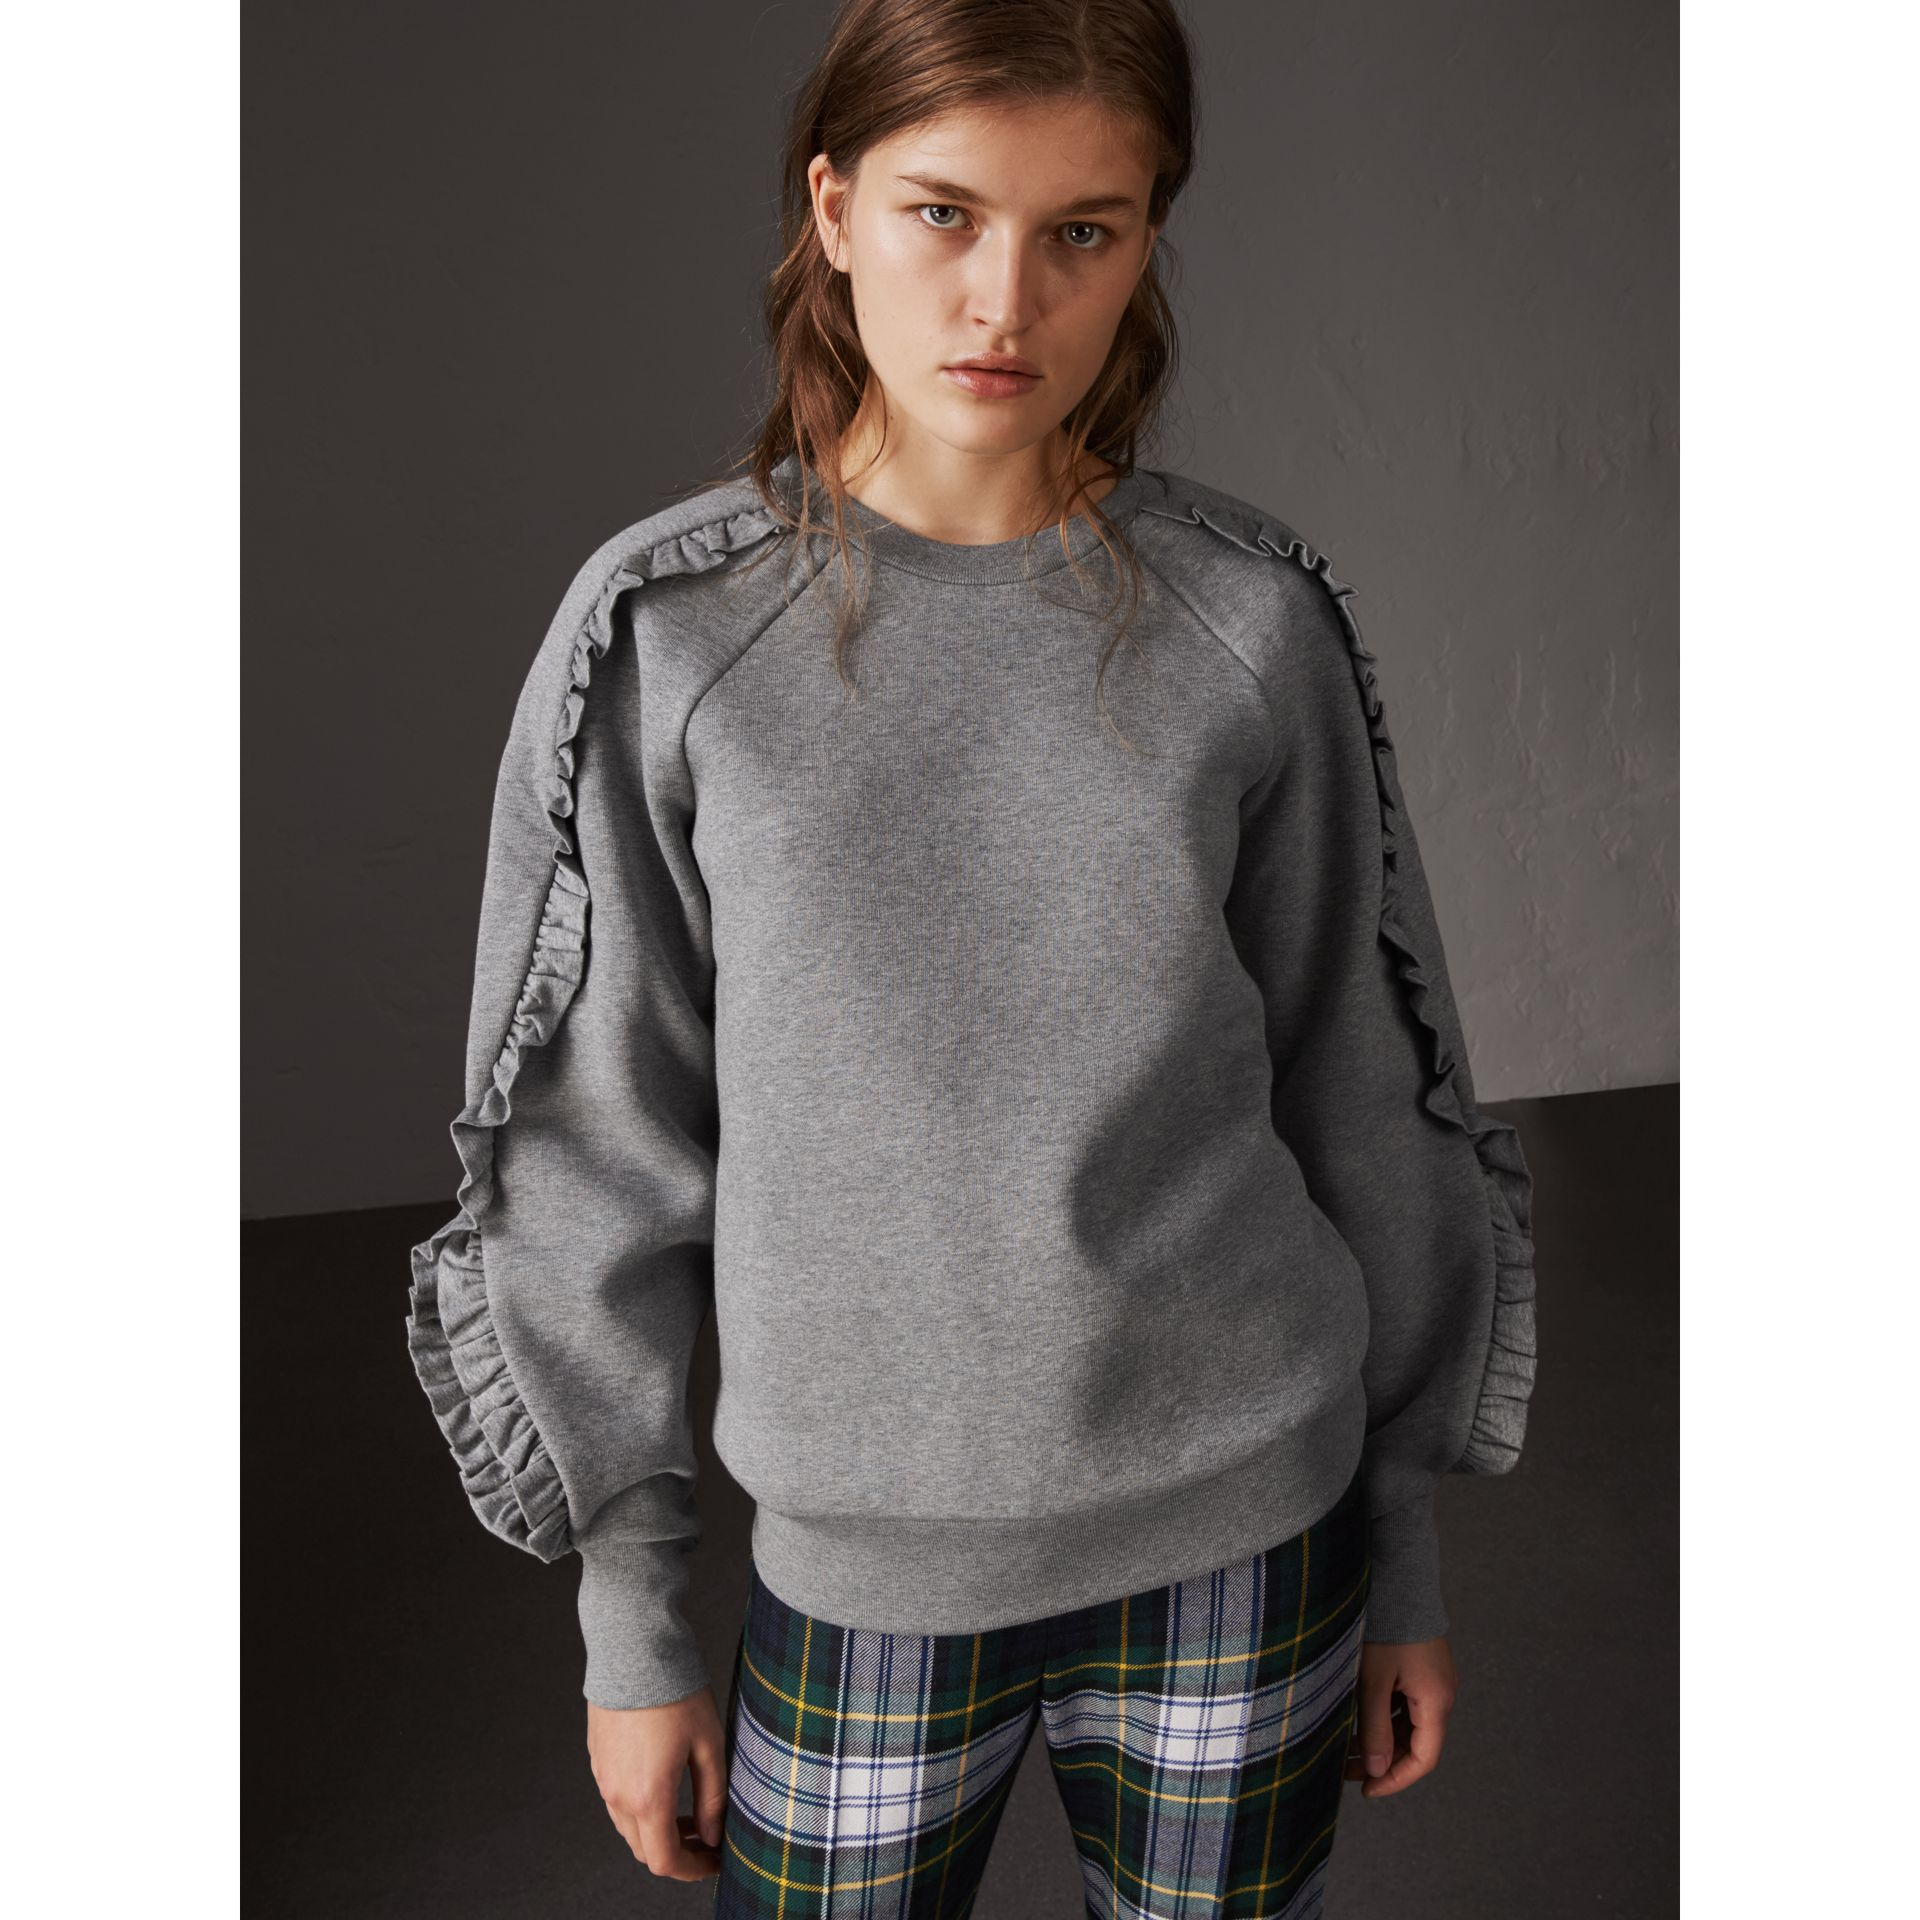 Sweat-shirt à manches à volants (Camaïeu De Gris Pâles) - Femme | Burberry - photo de la galerie 5